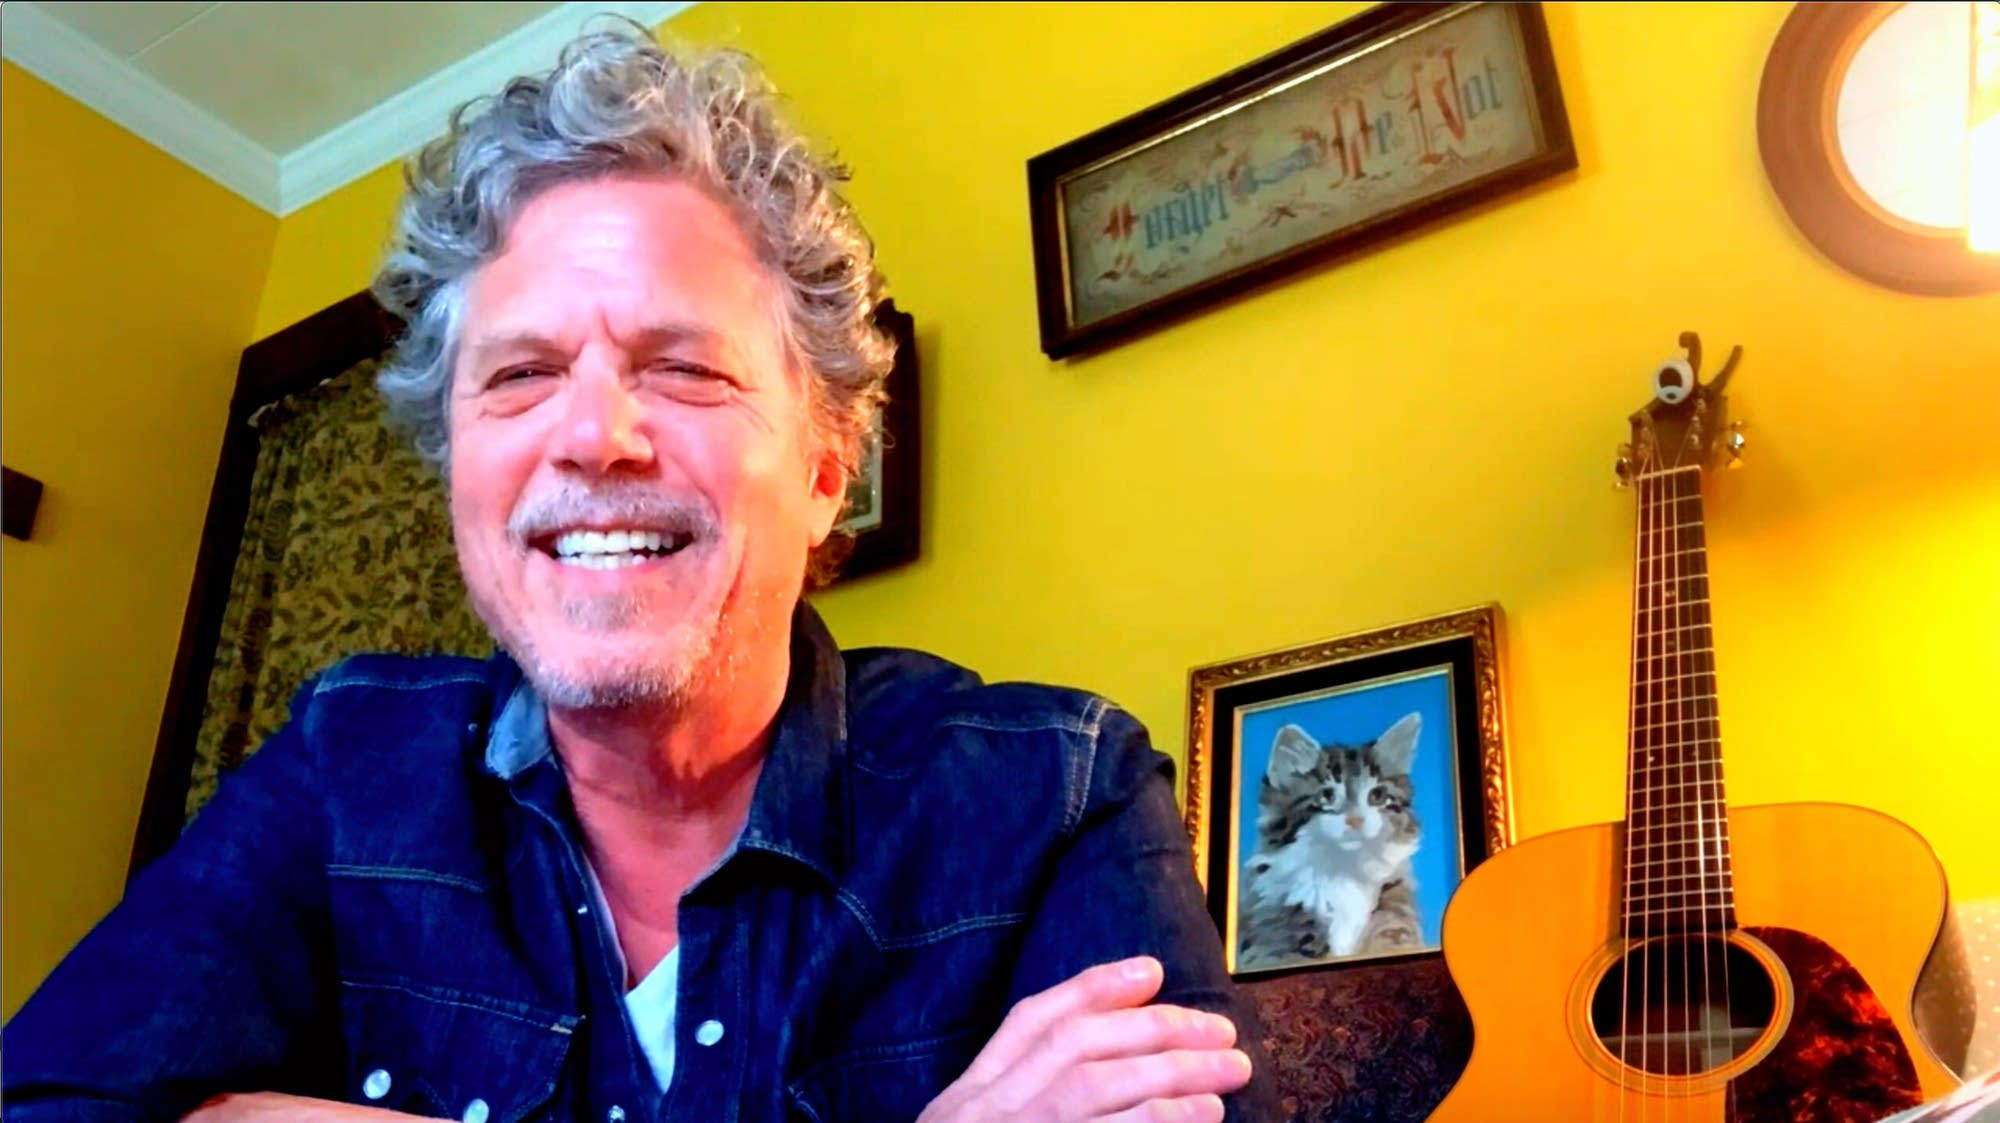 Gary Louris is interviewed by The Current's Jim McGuinn